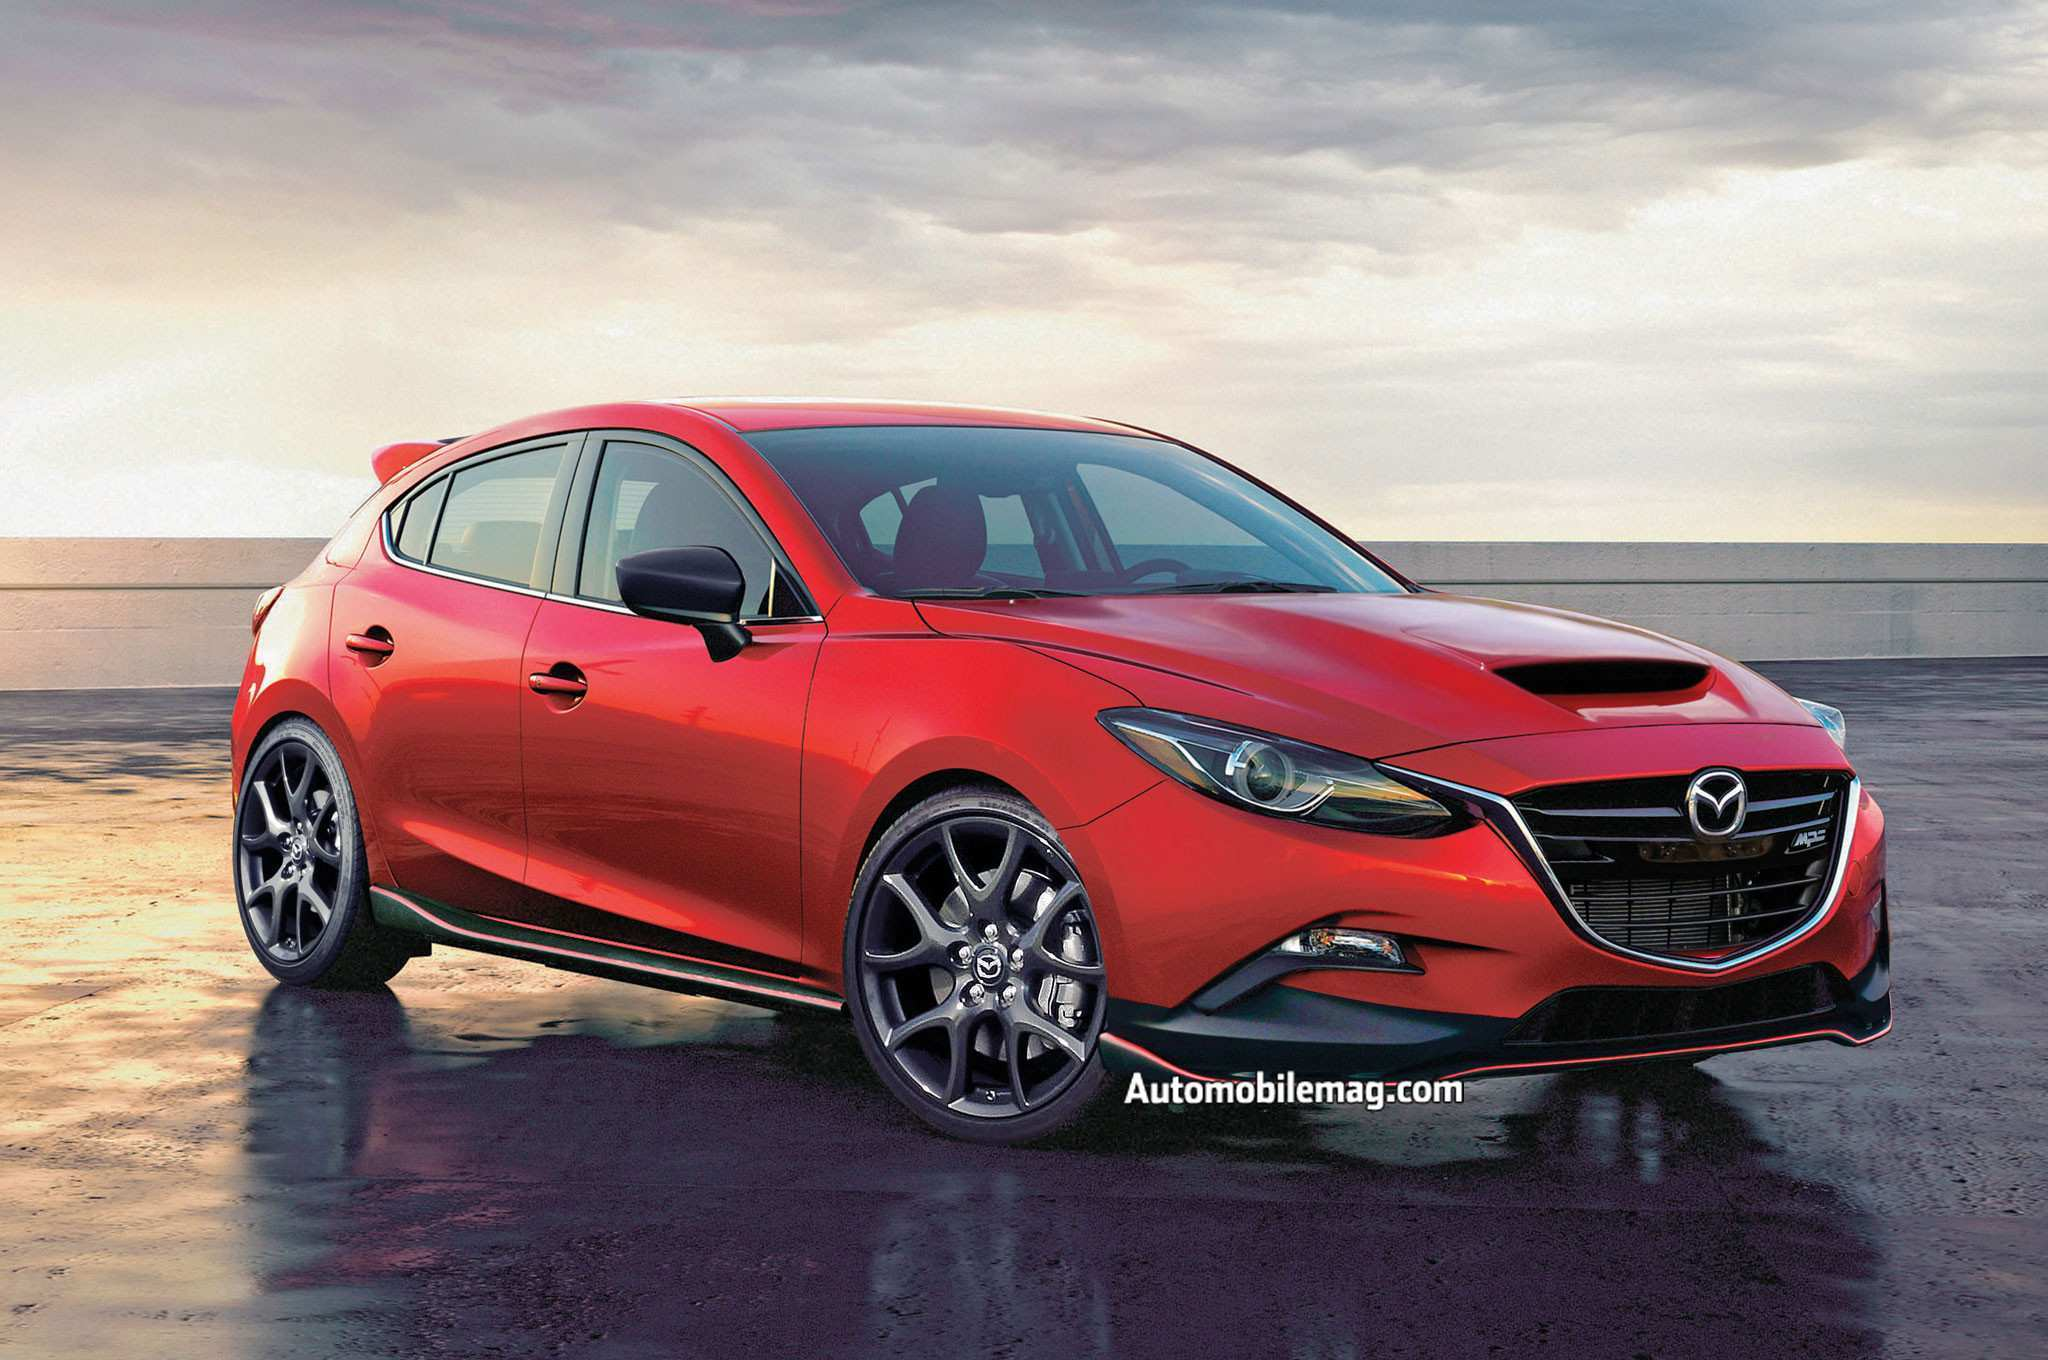 61 Best Review Mazdaspeed 2019 Price for Mazdaspeed 2019